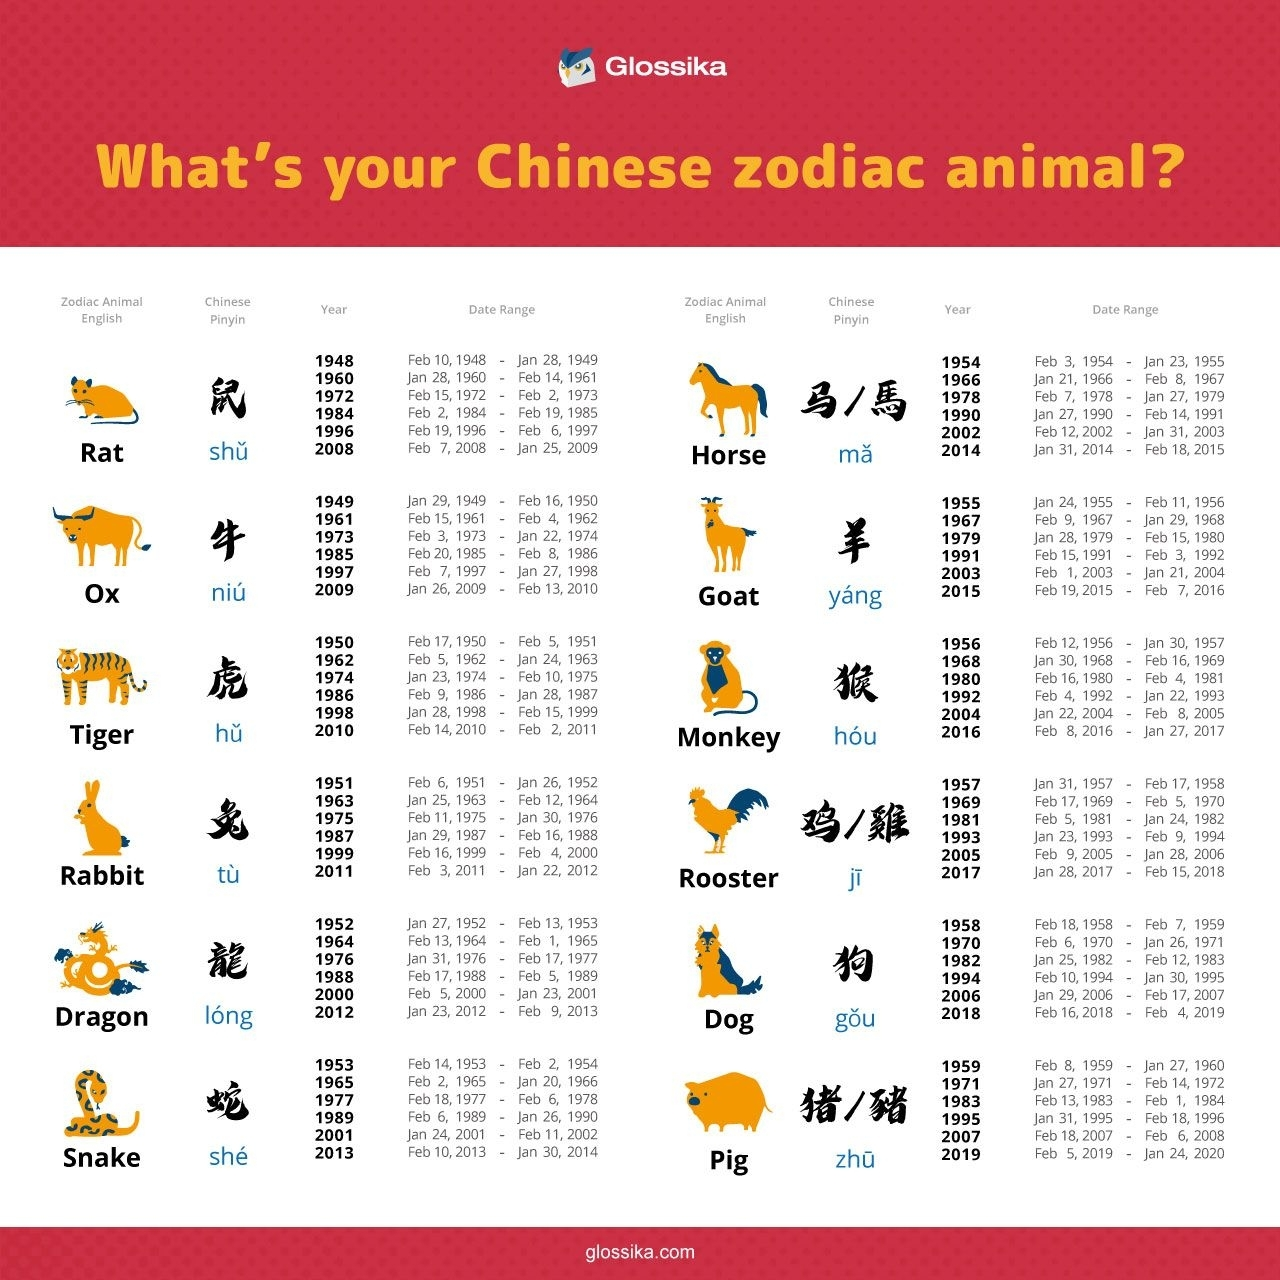 What's Your Chinese Zodiac Animal? | The Glossika Blog